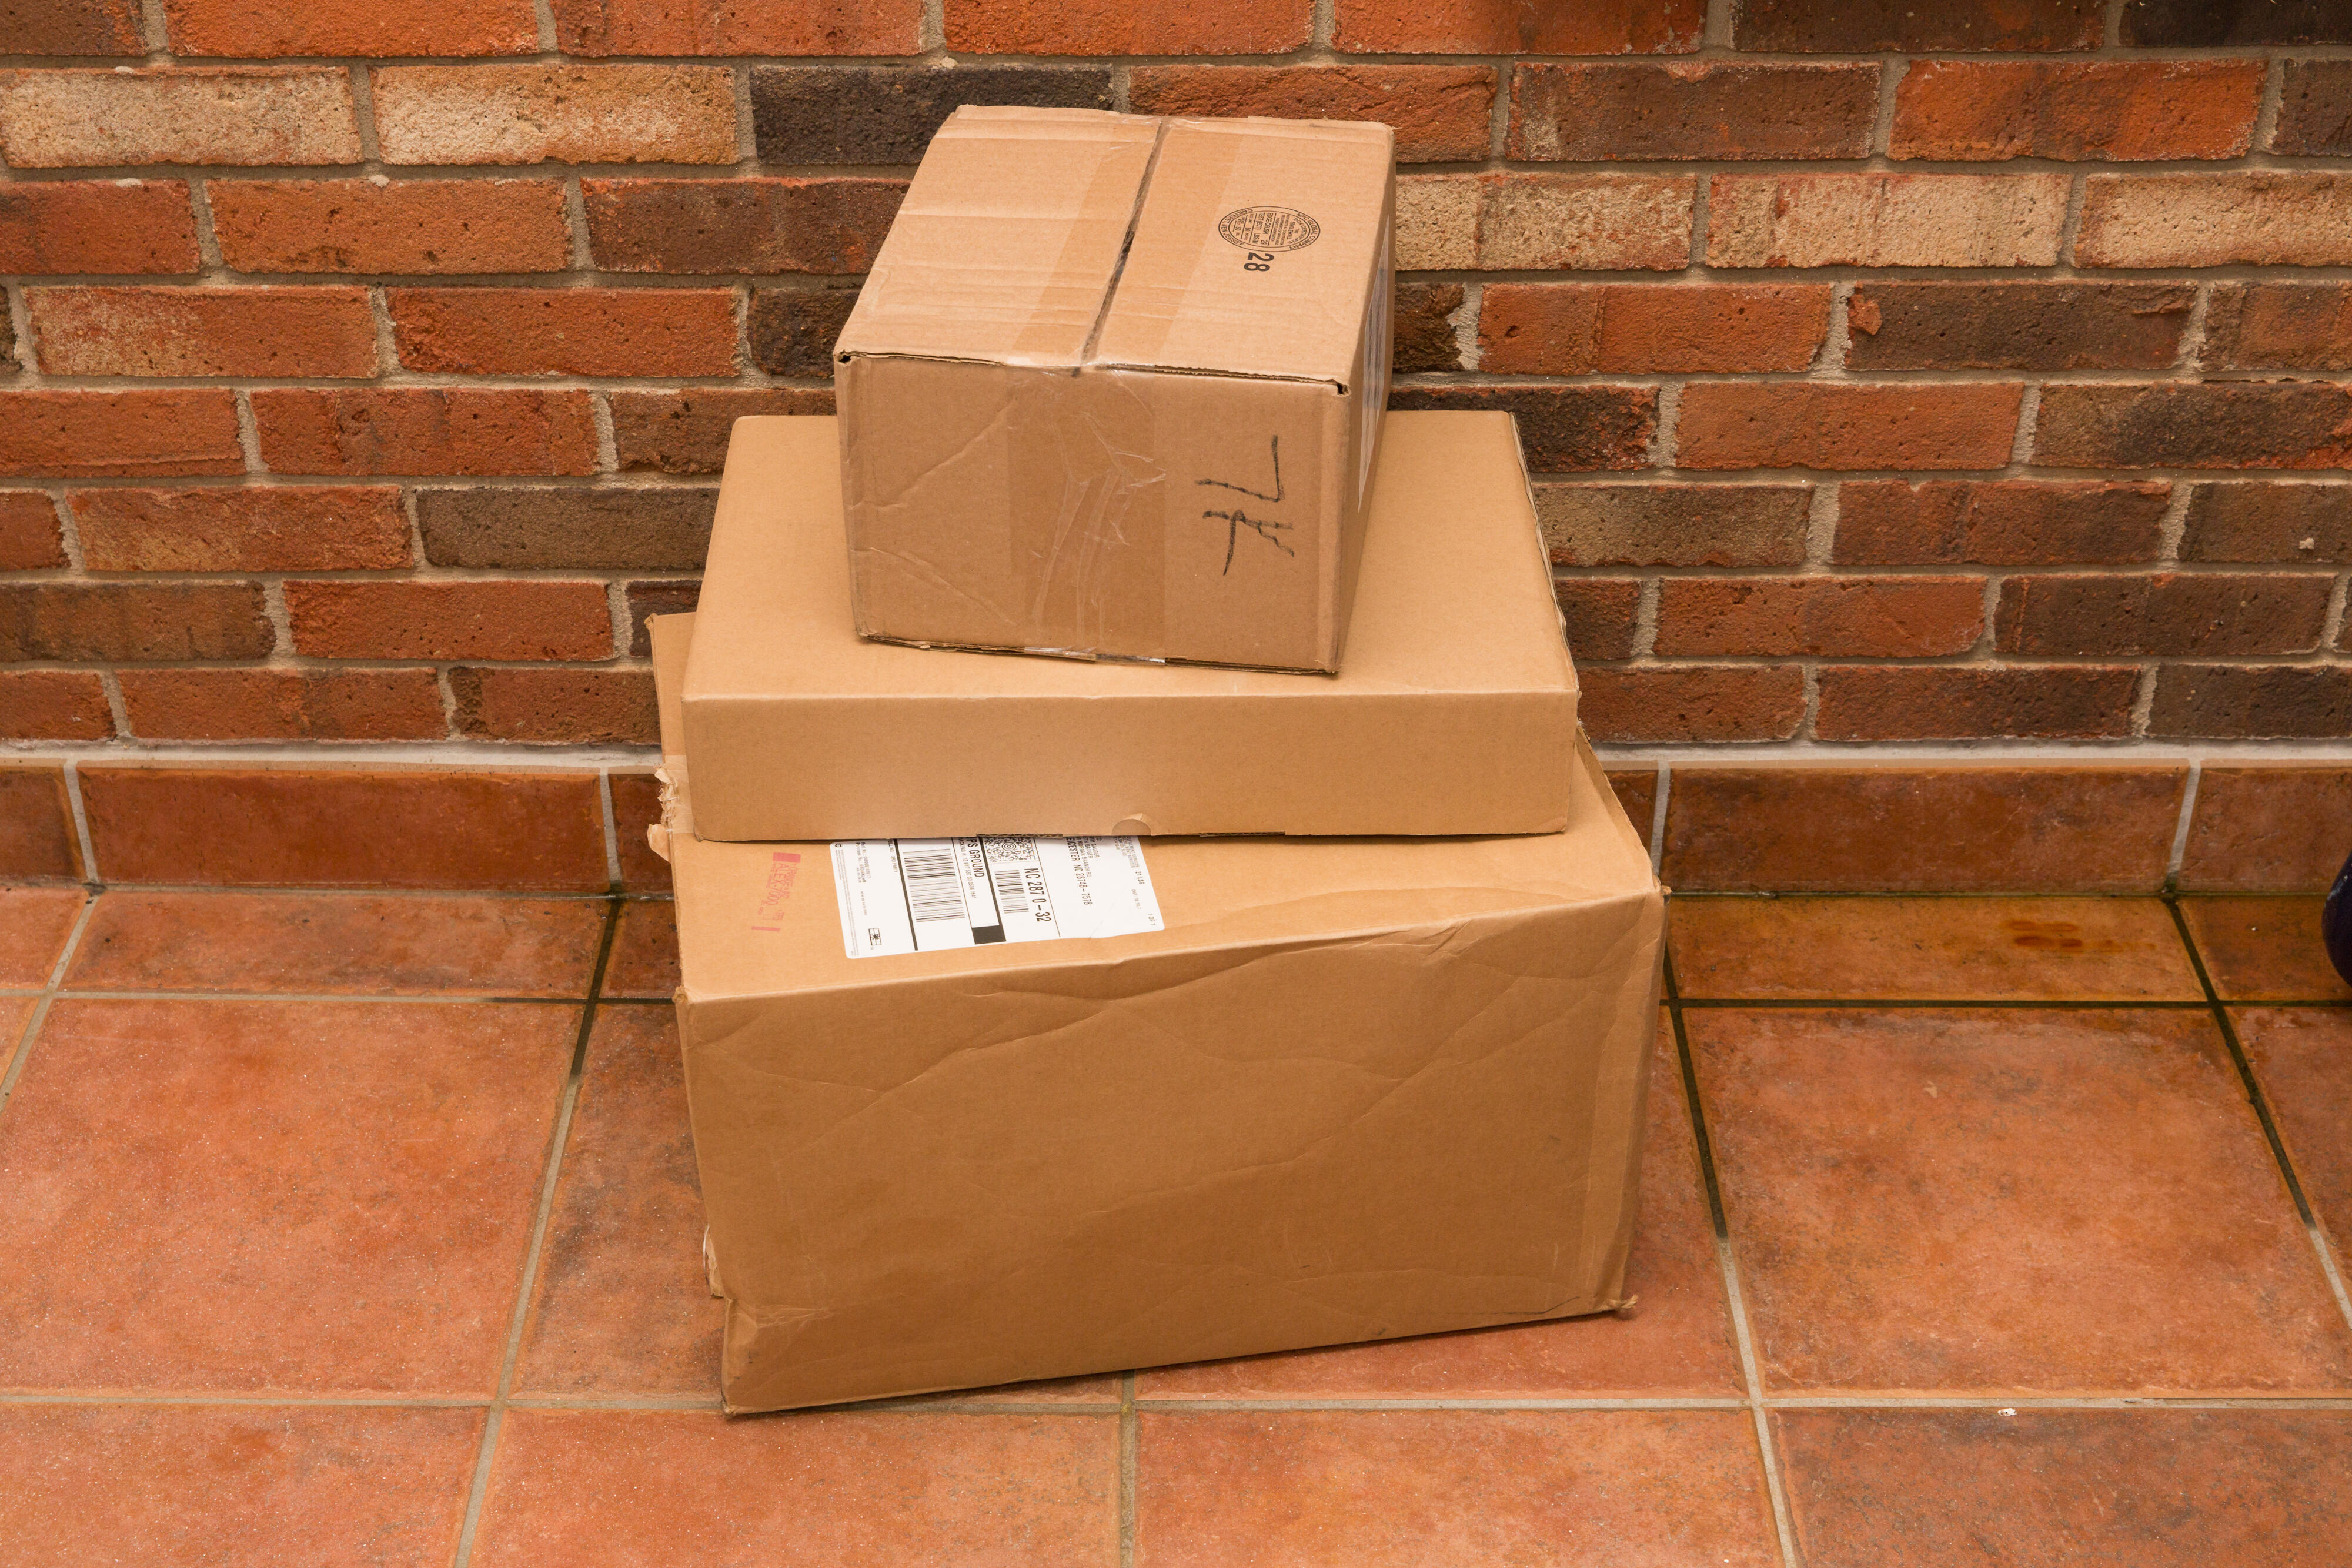 25-mail-packages-usps-fedex-amazon-ups-doorstep-mailbox-letters-shipping-coronavirus-sta-at-home-2020-cnet